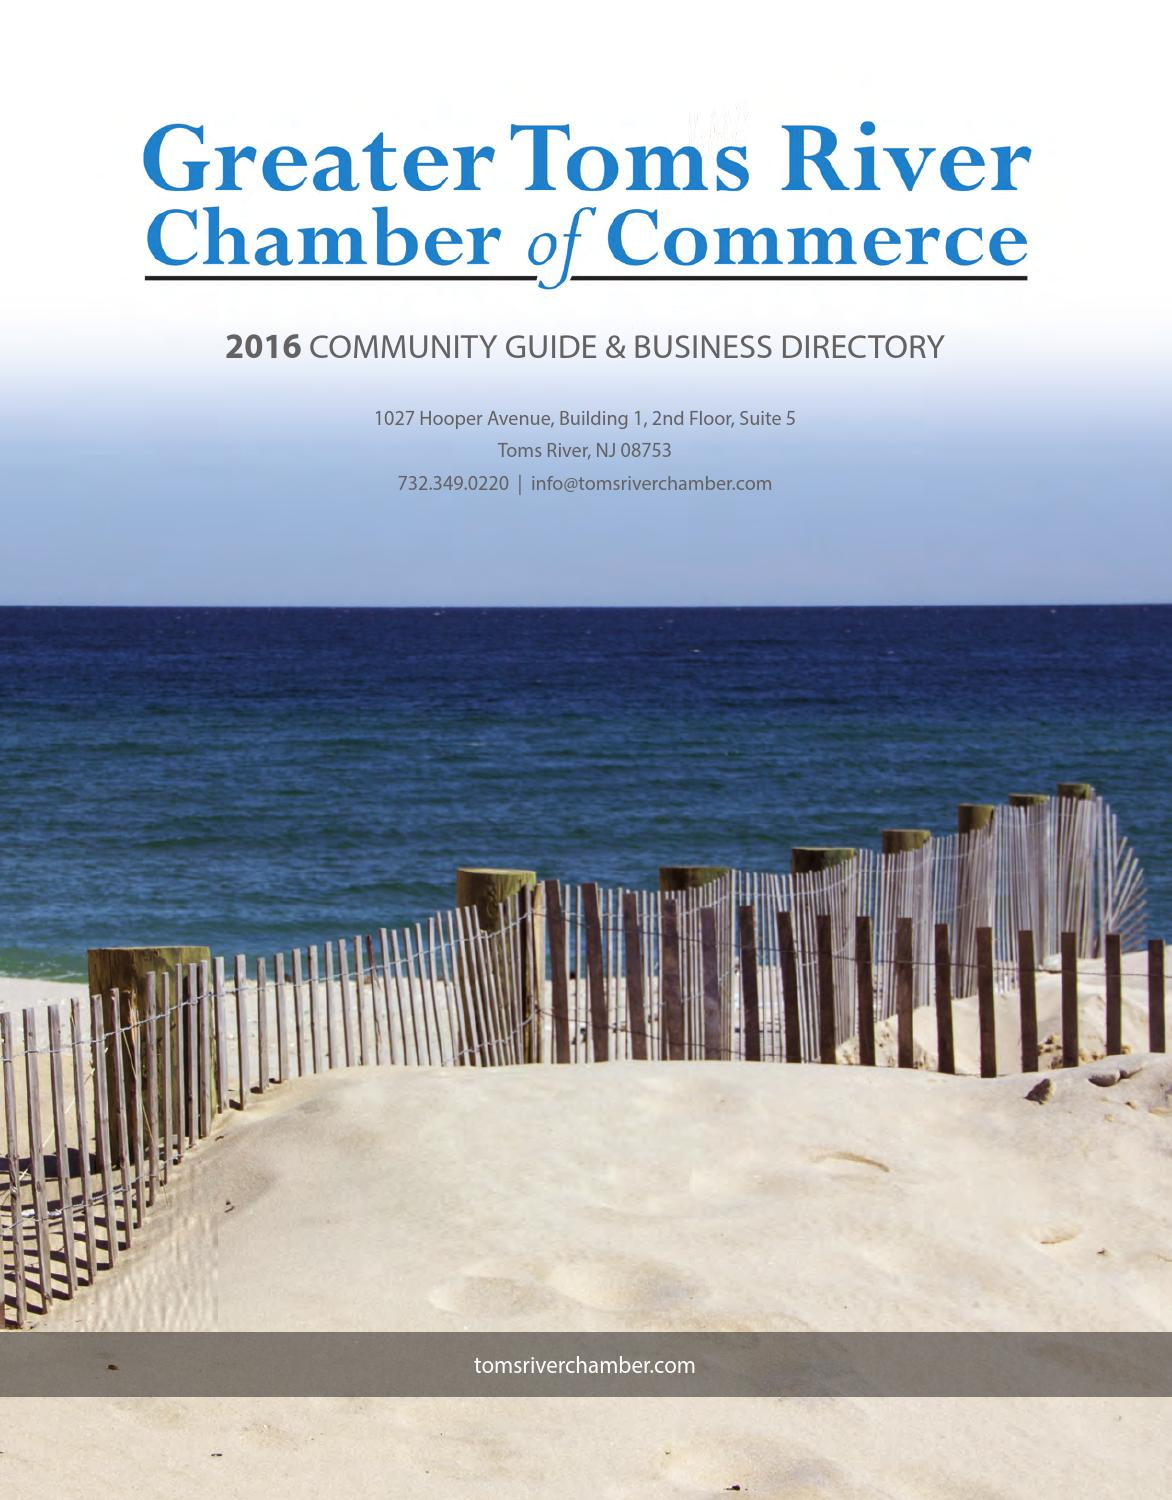 Toms River Nj Chamber Guide By Town Square Publications Llc Issuu